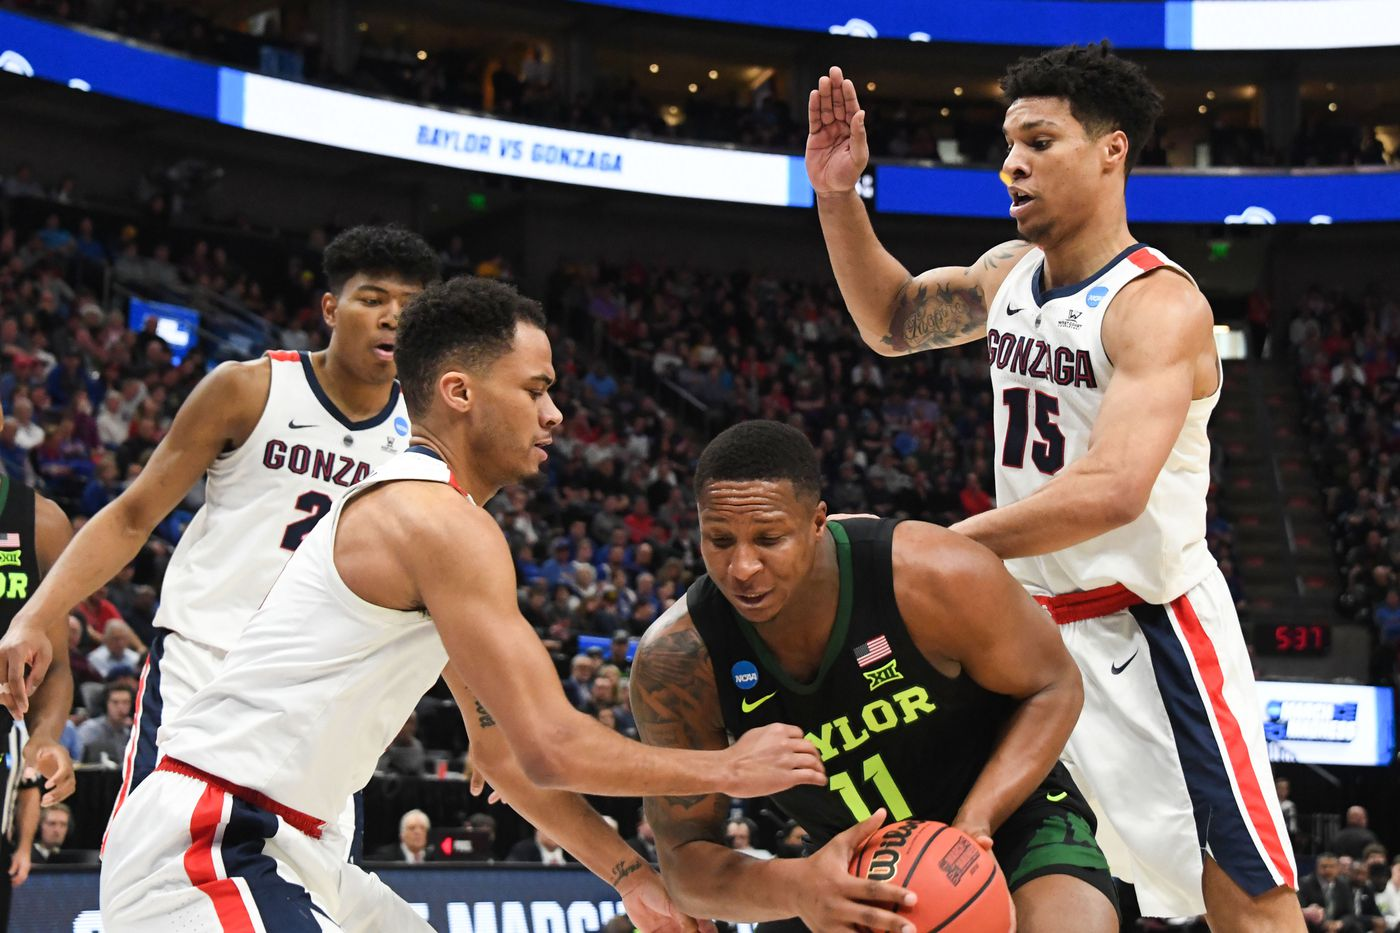 Baylor Falls to Gonzaga 83-71 - Our Daily Bears